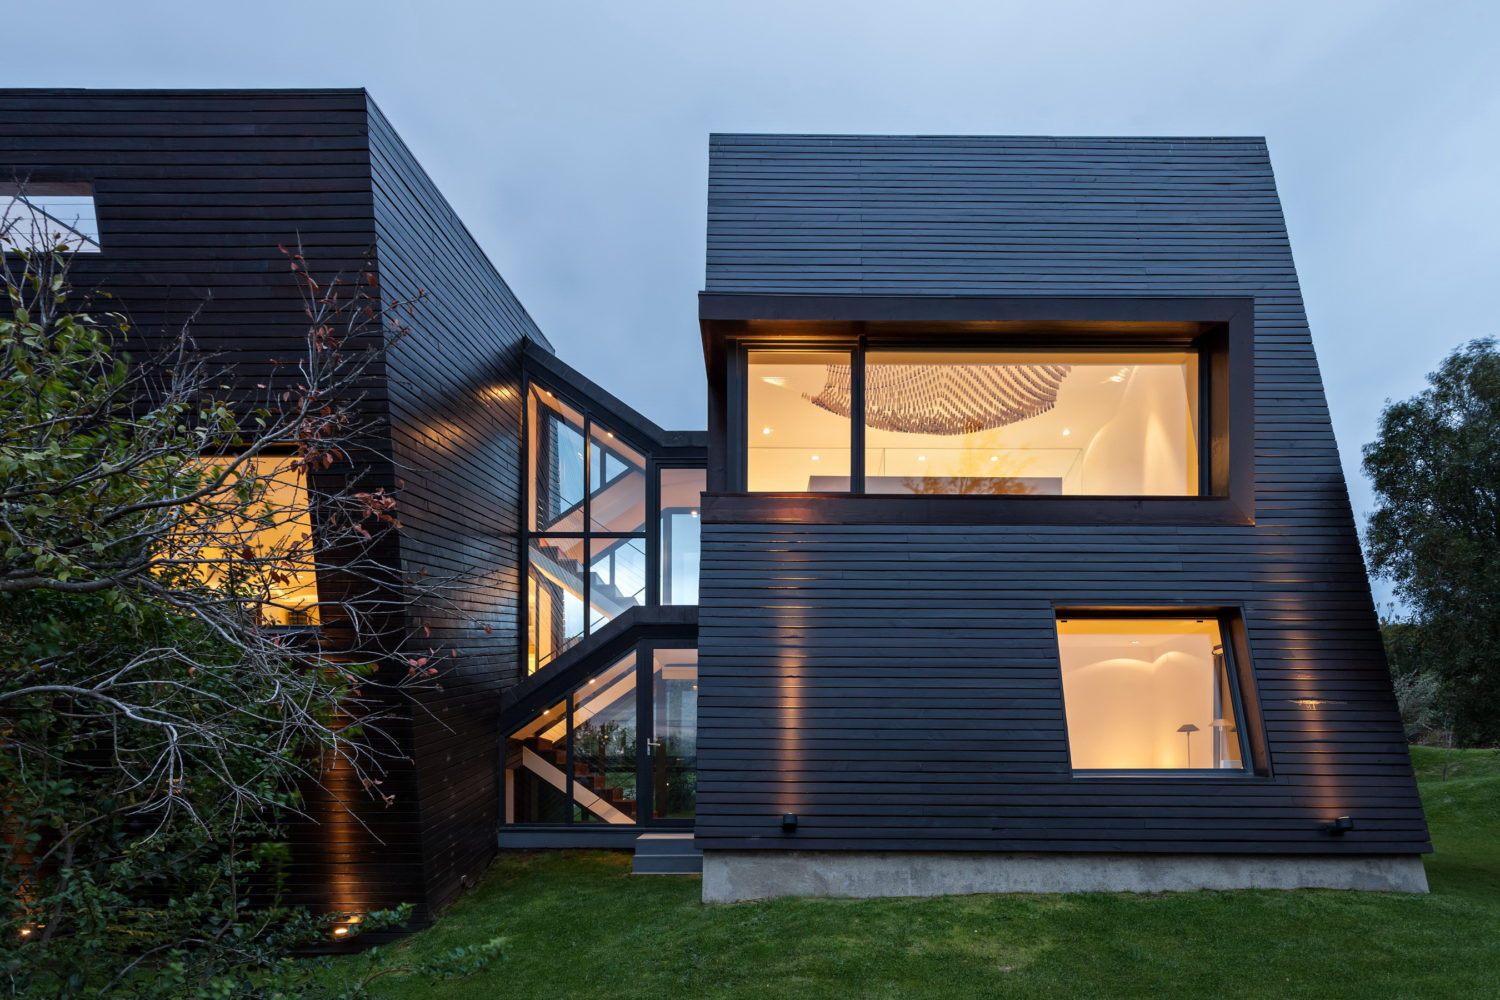 Spacious House With Five Prisms by Alric Galindez